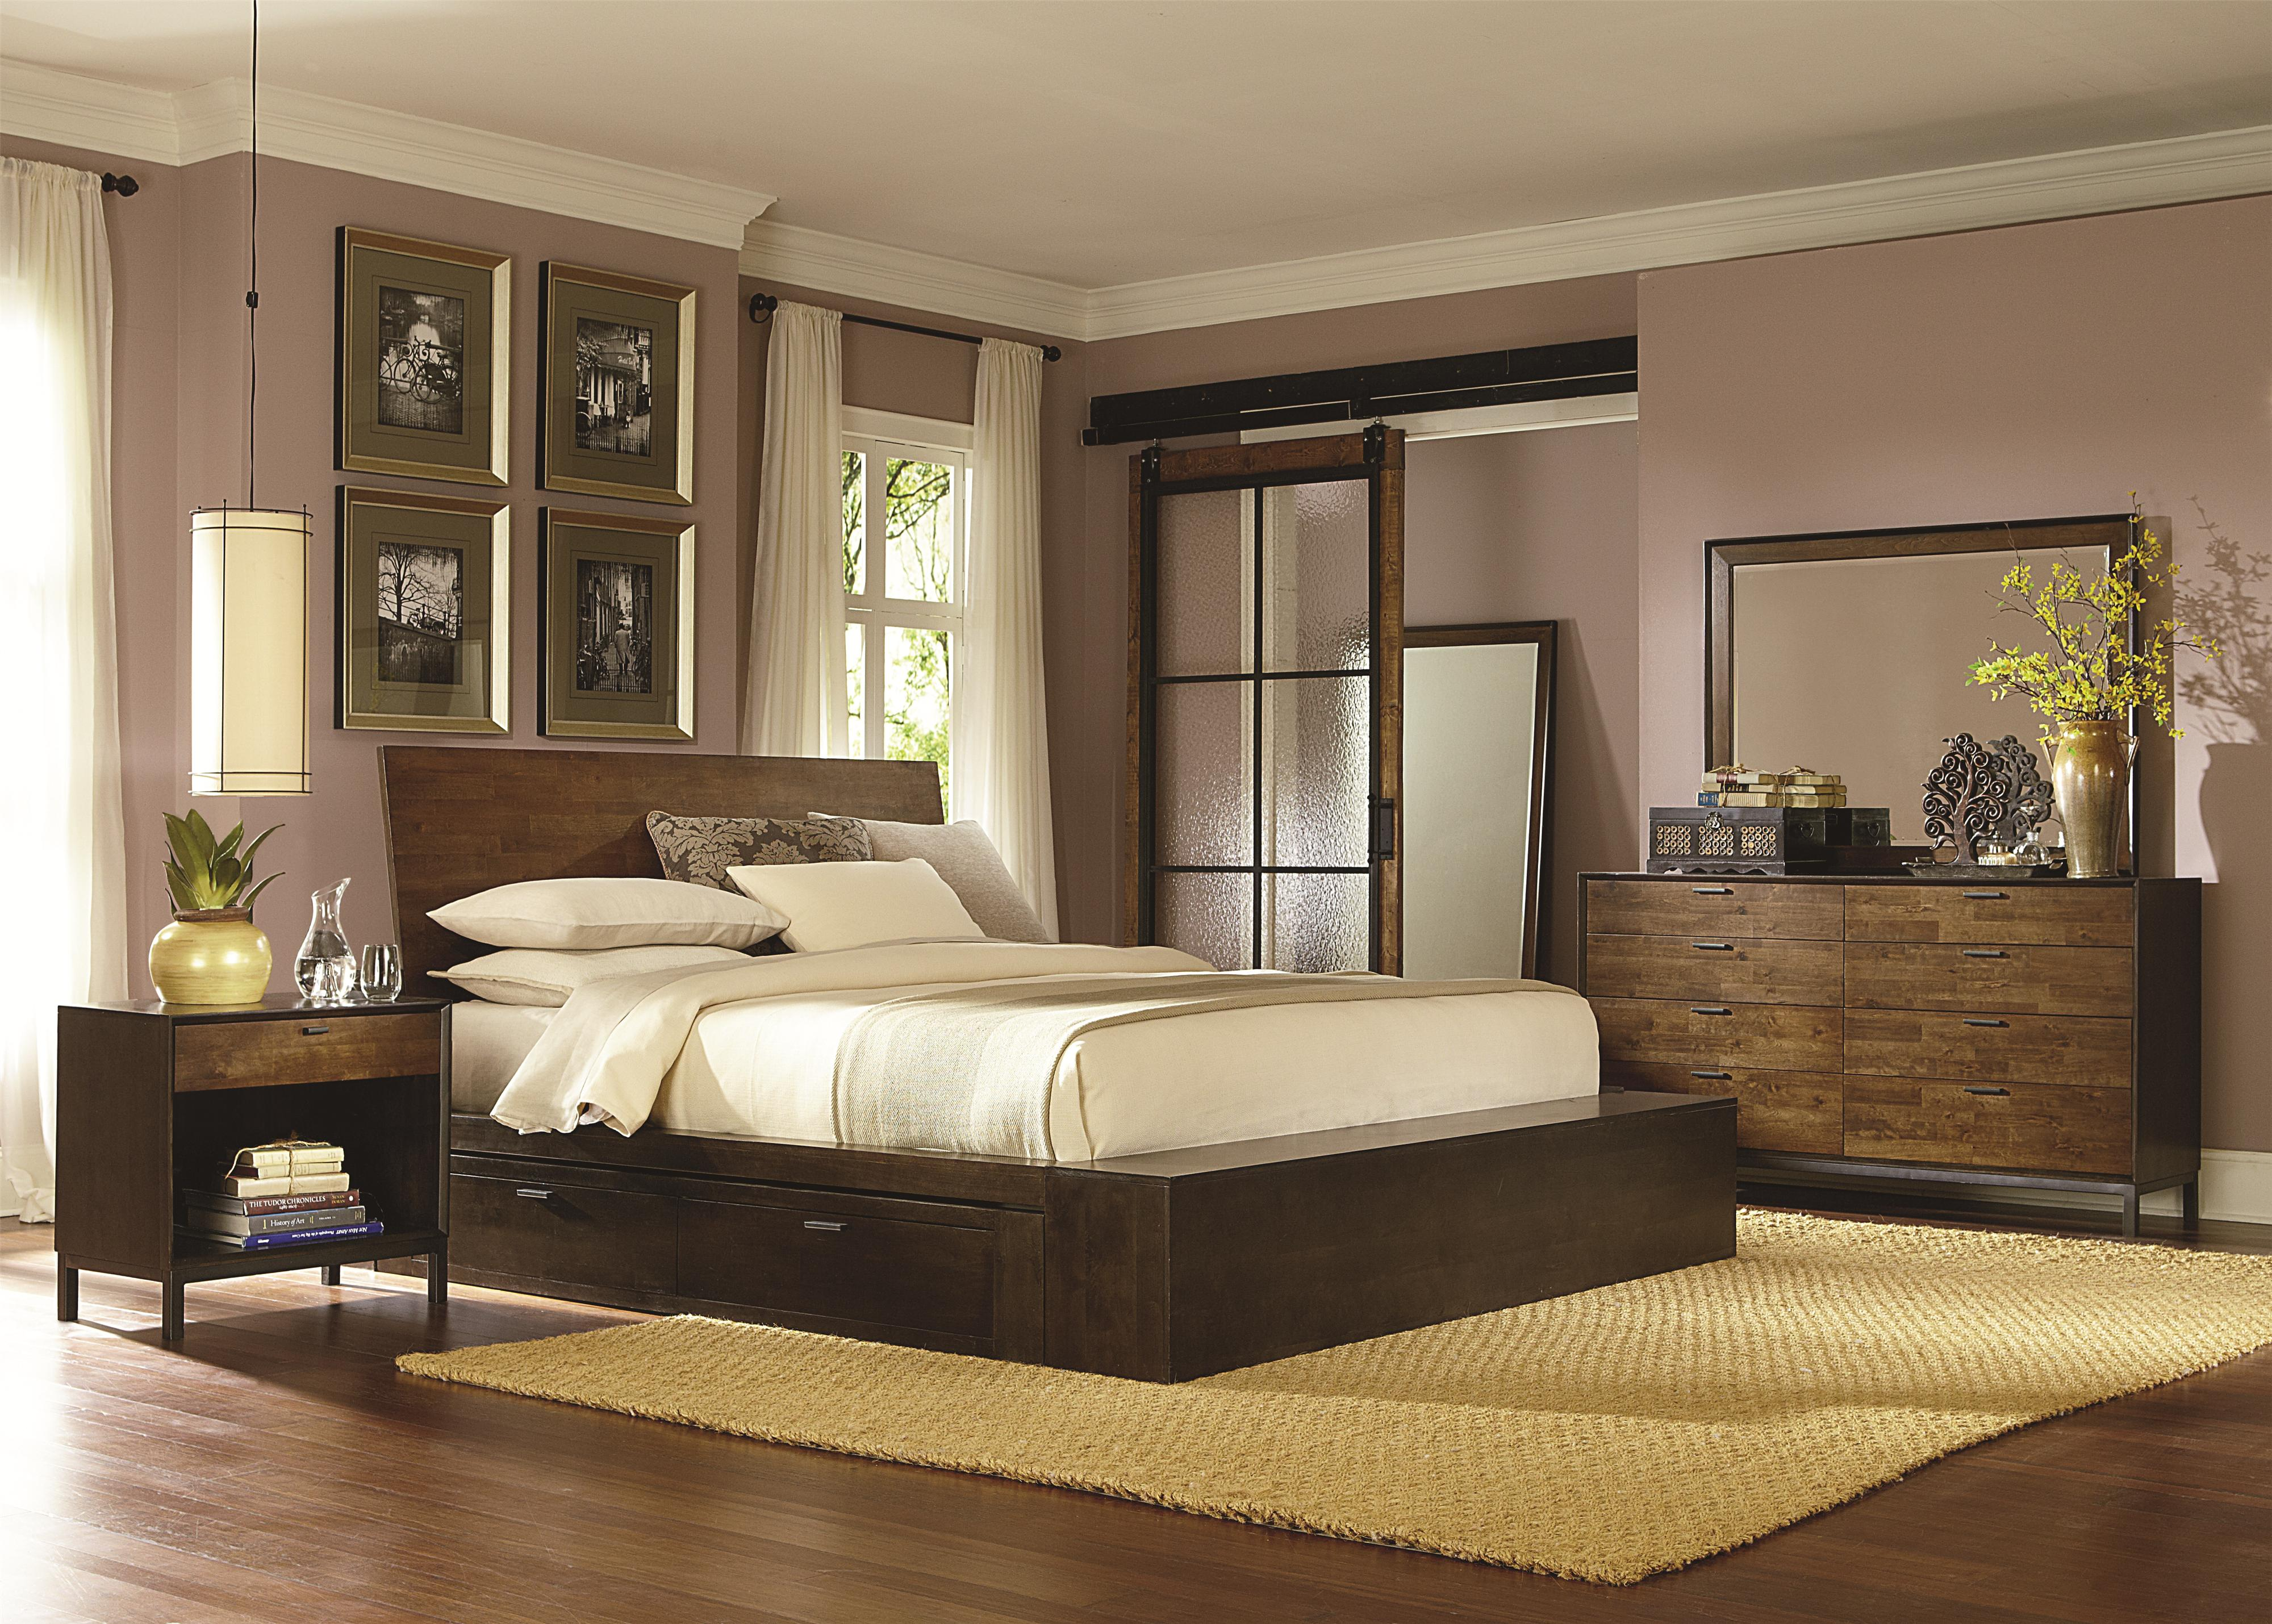 beds with storage drawers and headboard full size of bedroom  - king platform bed w two storage drawers